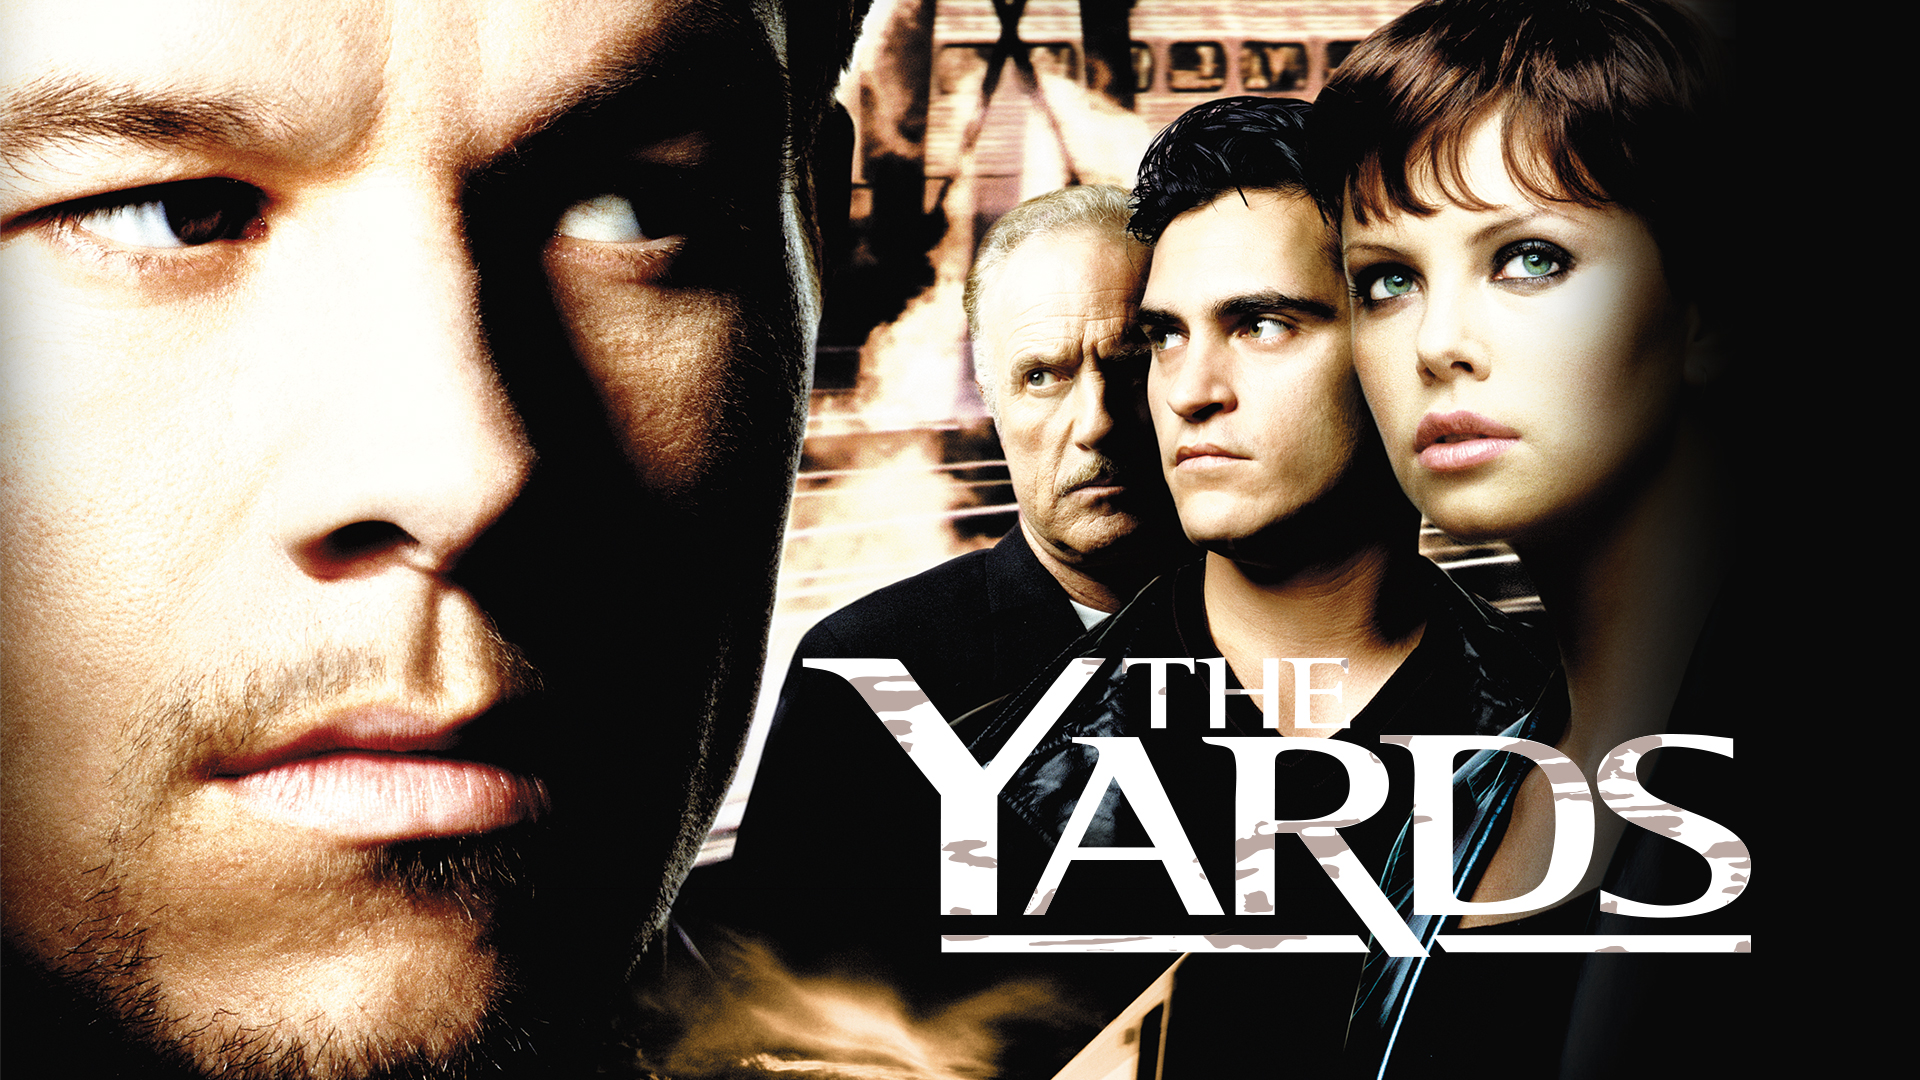 The Yards - Official Trailer (HD)